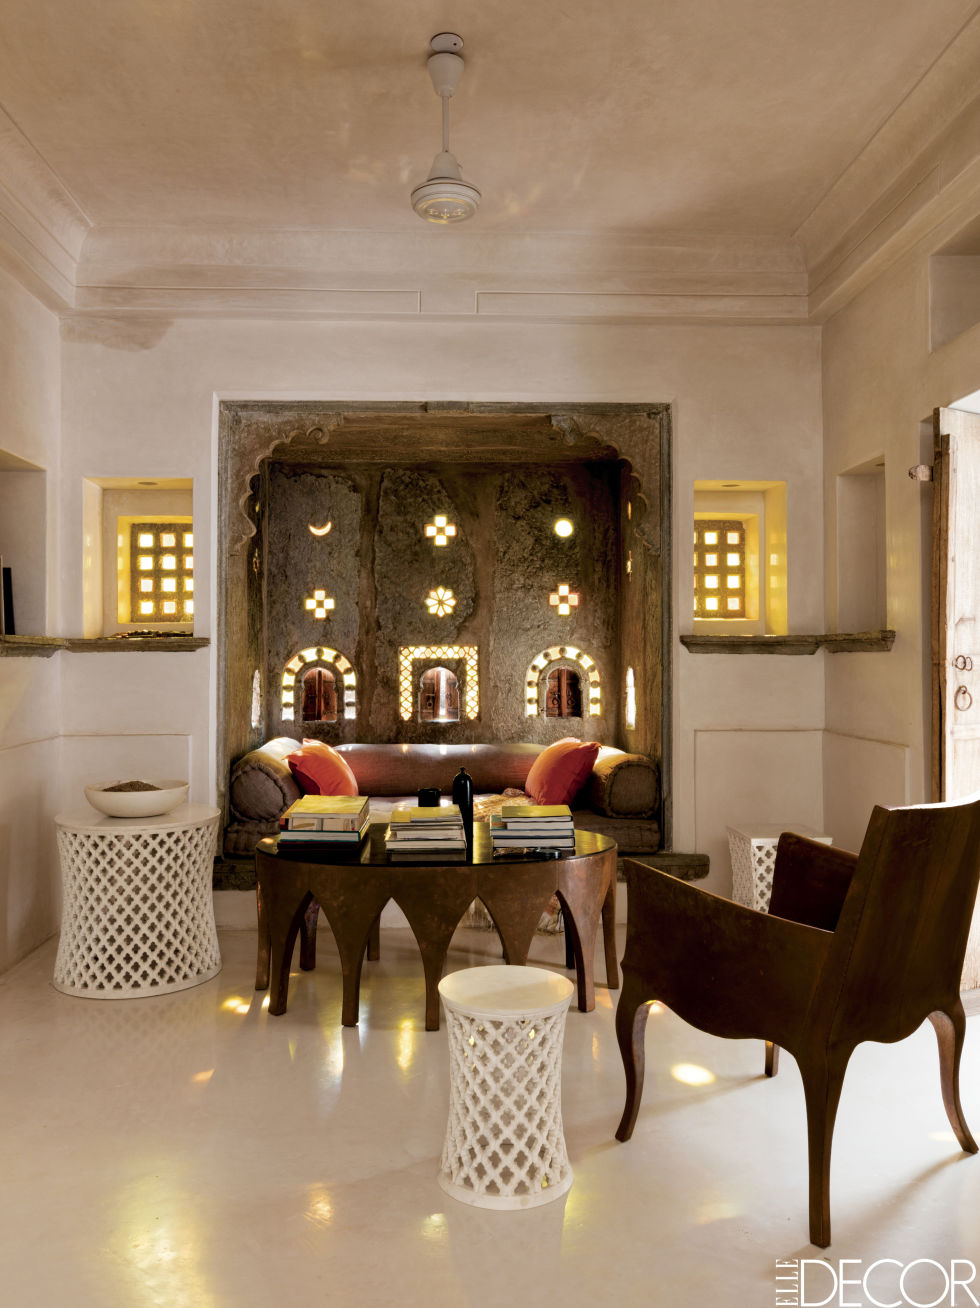 Elledecor Design Decorate House Interiors A9440 Udaipur India